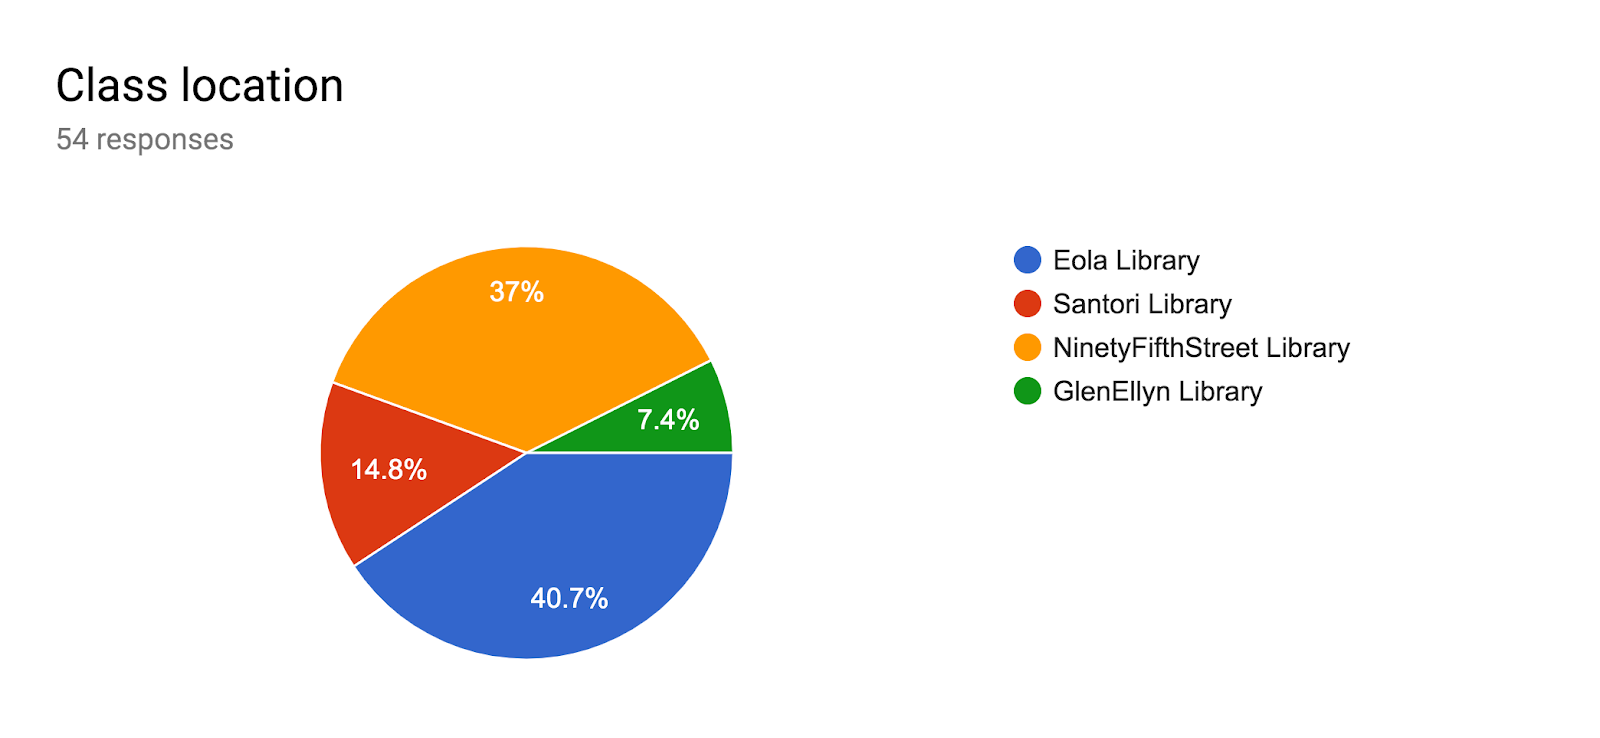 Forms response chart. Question title: Class location. Number of responses: 54 responses.